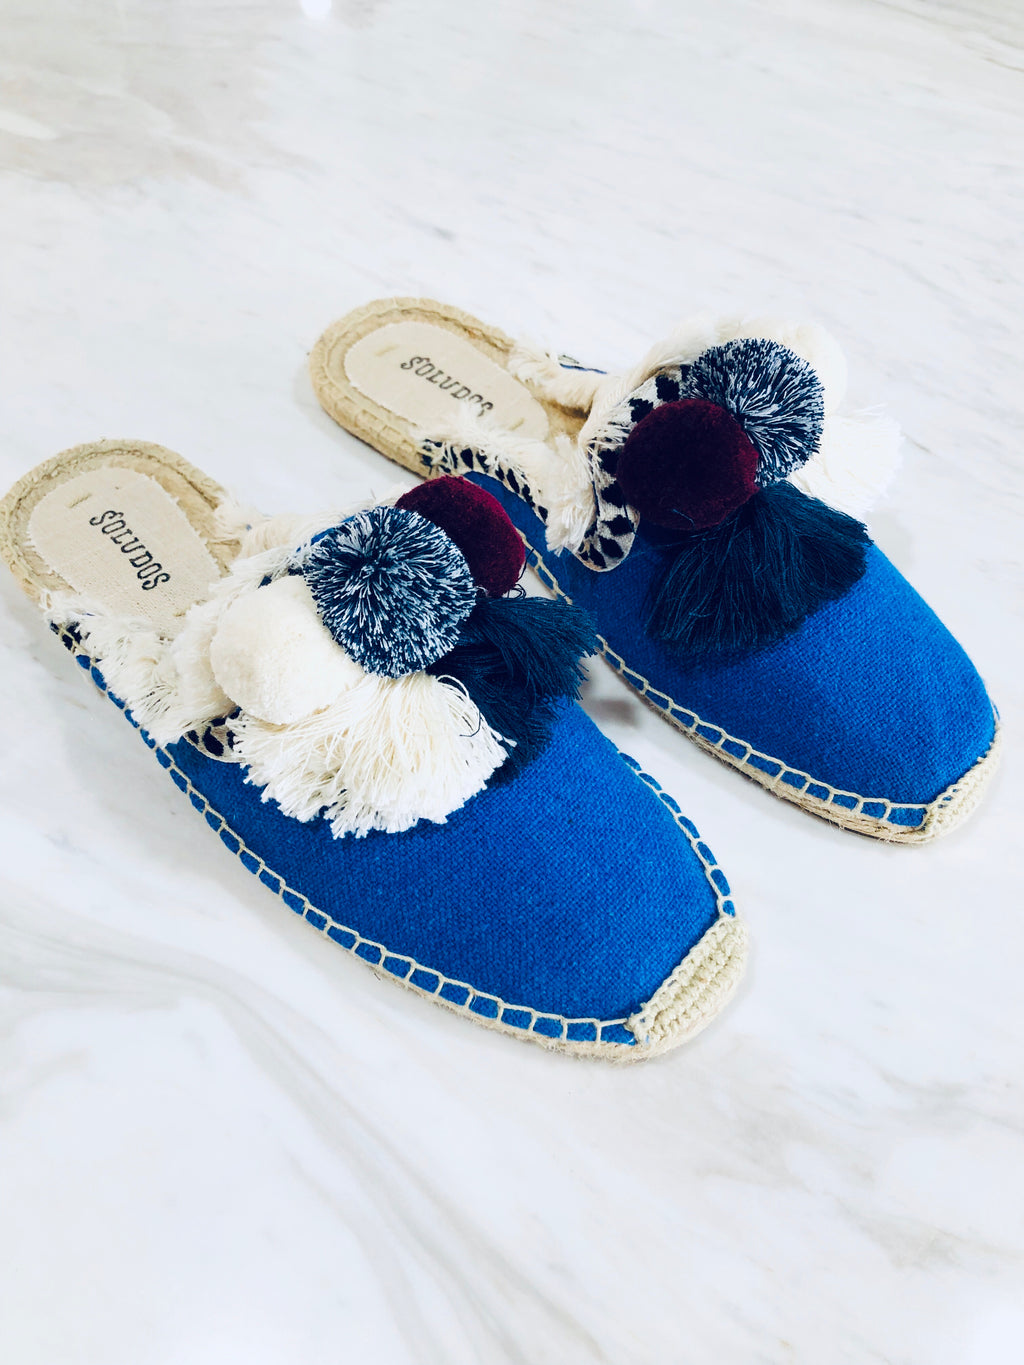 UNIKONCEPT Lifestyle boutique: Image shows a pair of mule soludos. The coco pom pom mules in marlin blue features a canvas blue toe piece with white, Burgundy and light blue pom poms on top. the shoe also has tassel underneath the poms and intricate embroidered detail around.